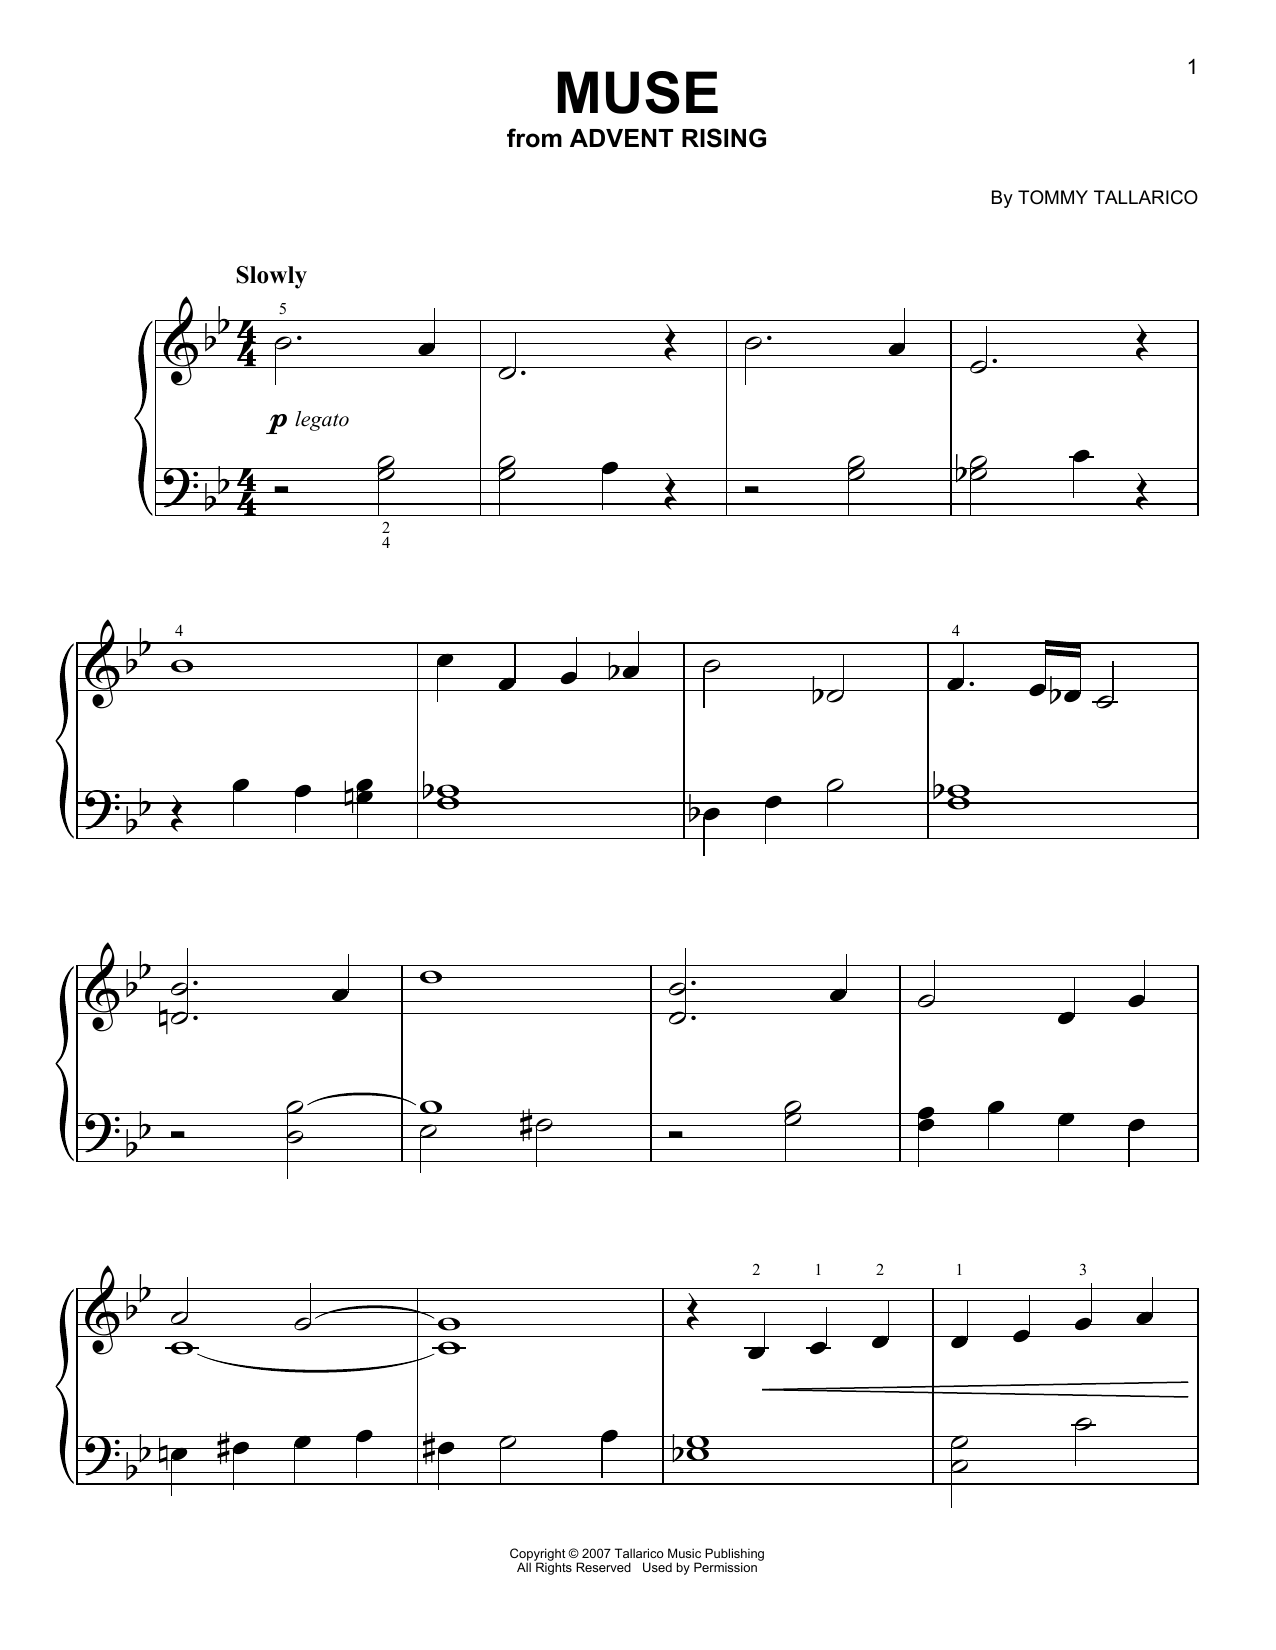 Tommy Tallarico Muse (from Advent Rising) sheet music notes and chords. Download Printable PDF.